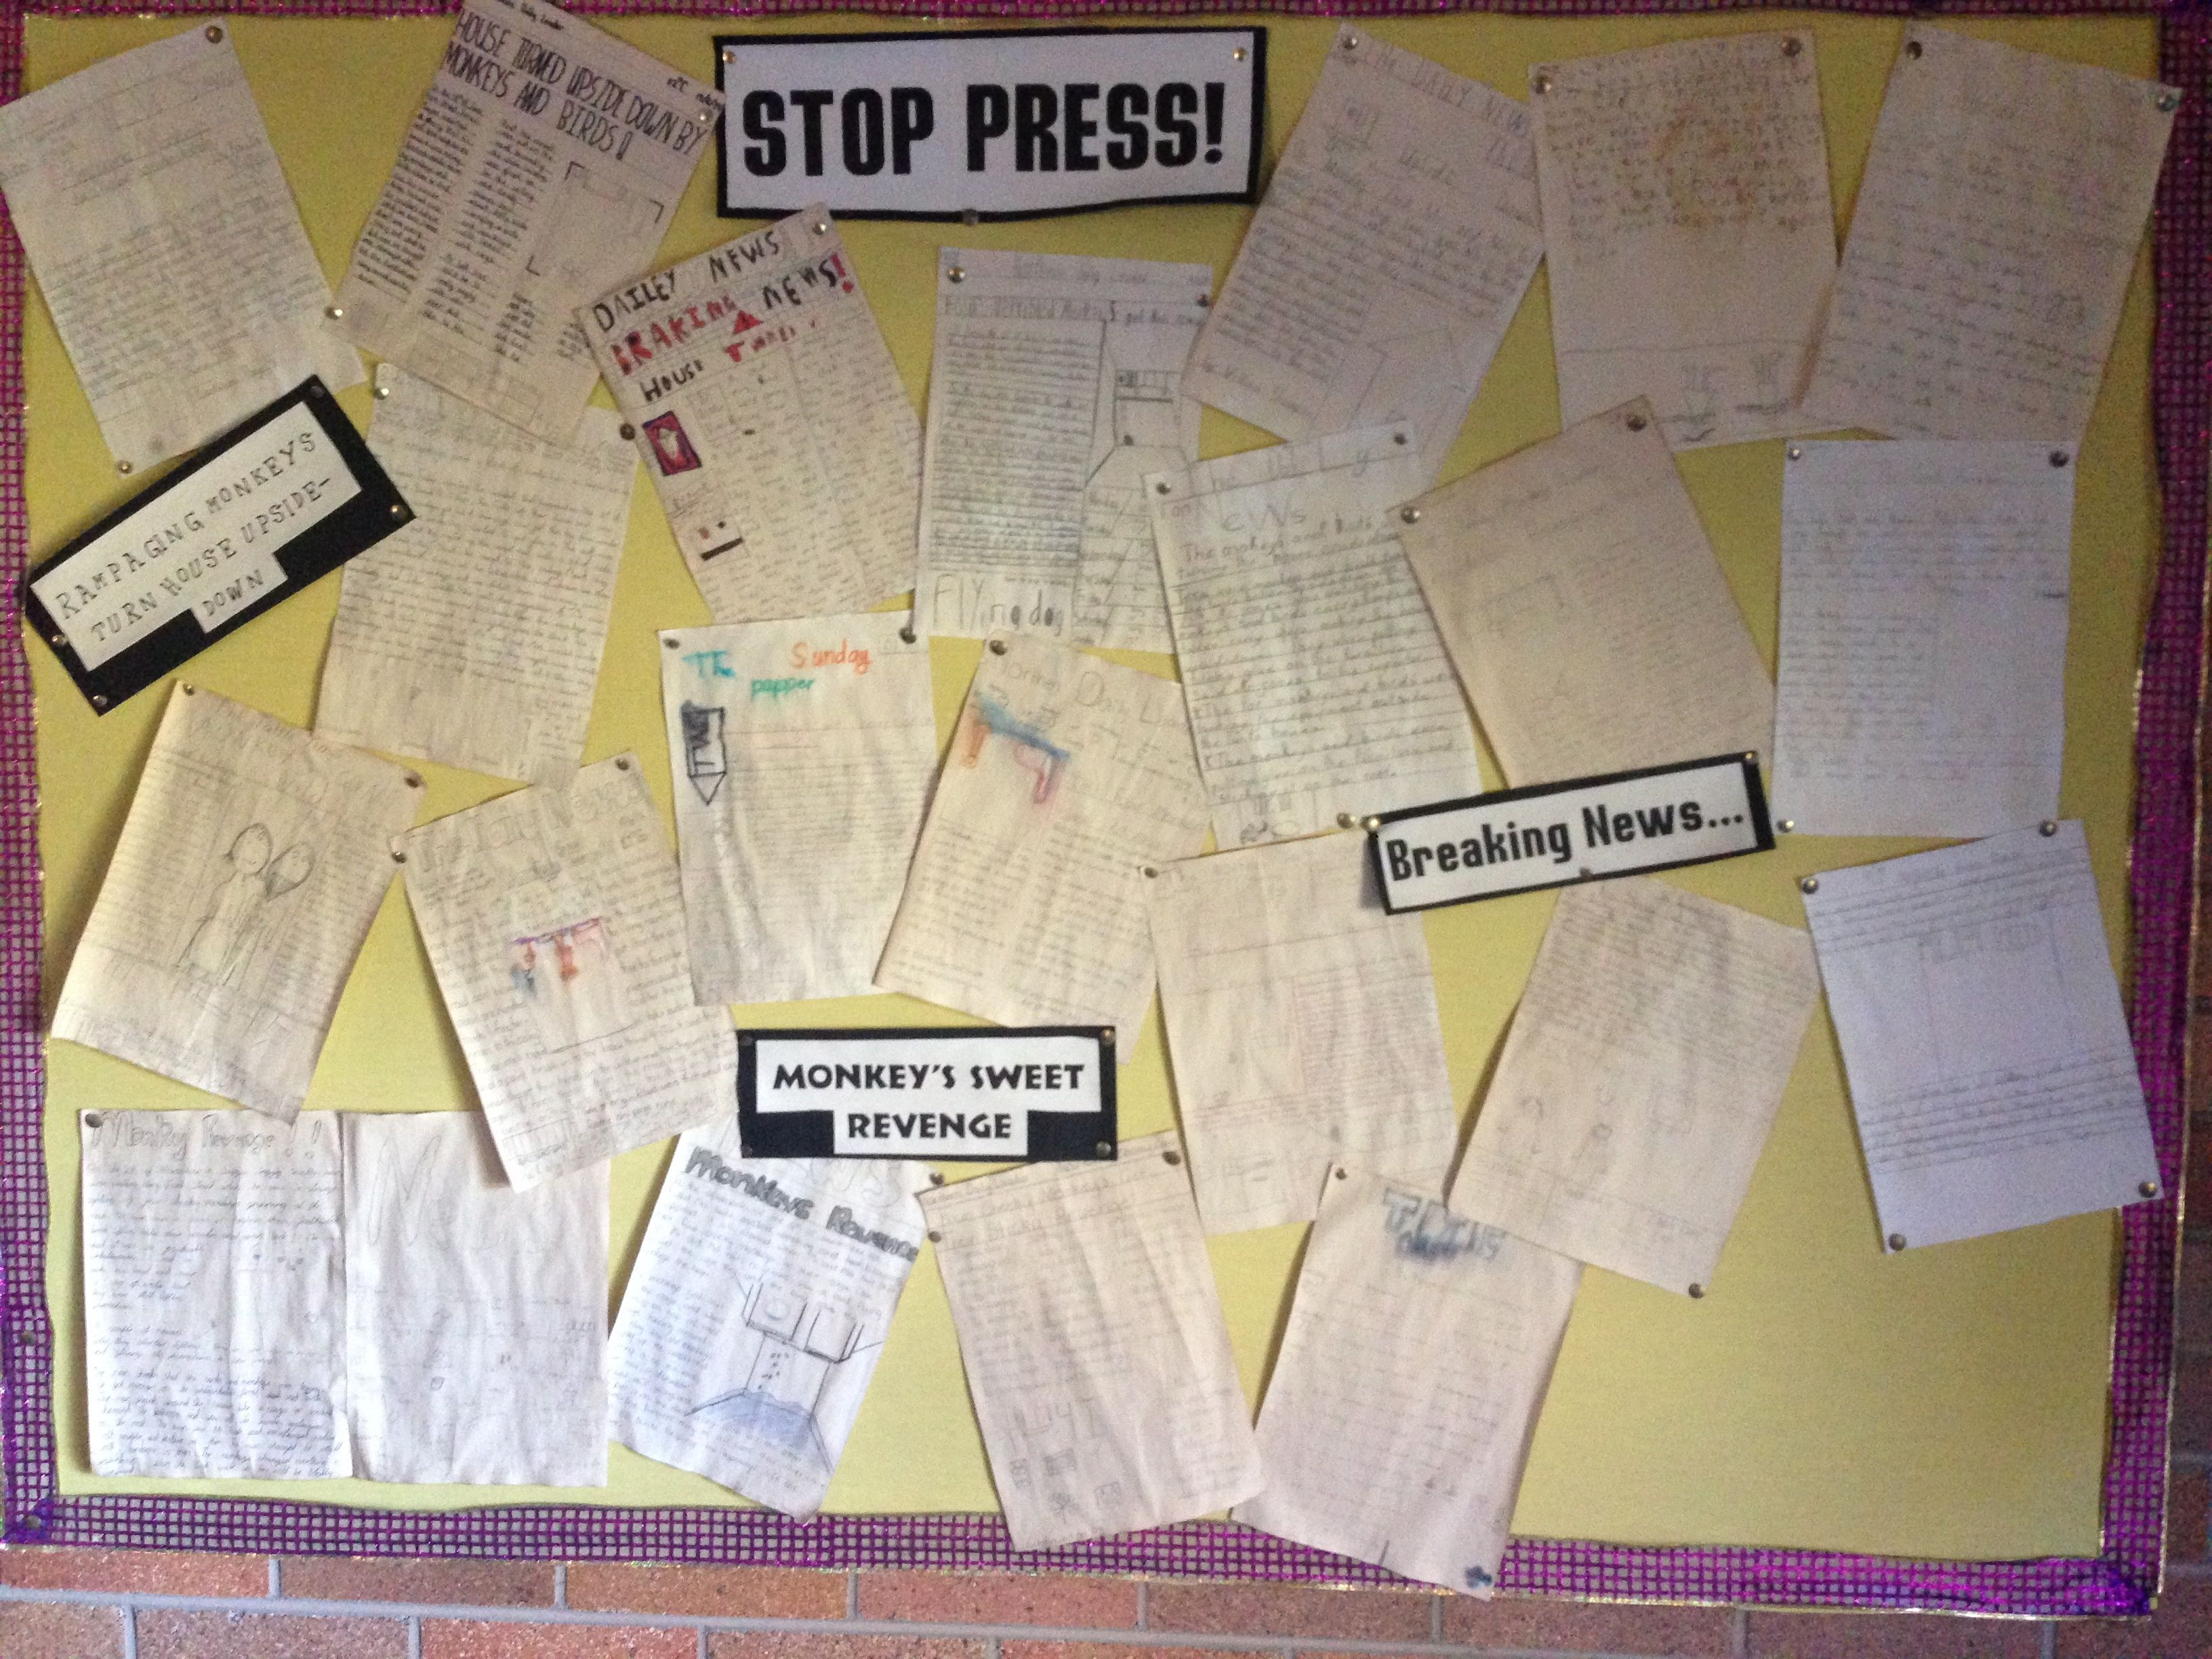 The Twits. Primary created newspaper articles reporting on the strange occurrence of a house being turned upside down in a scandalous prank on Mr and Mrs Twit.